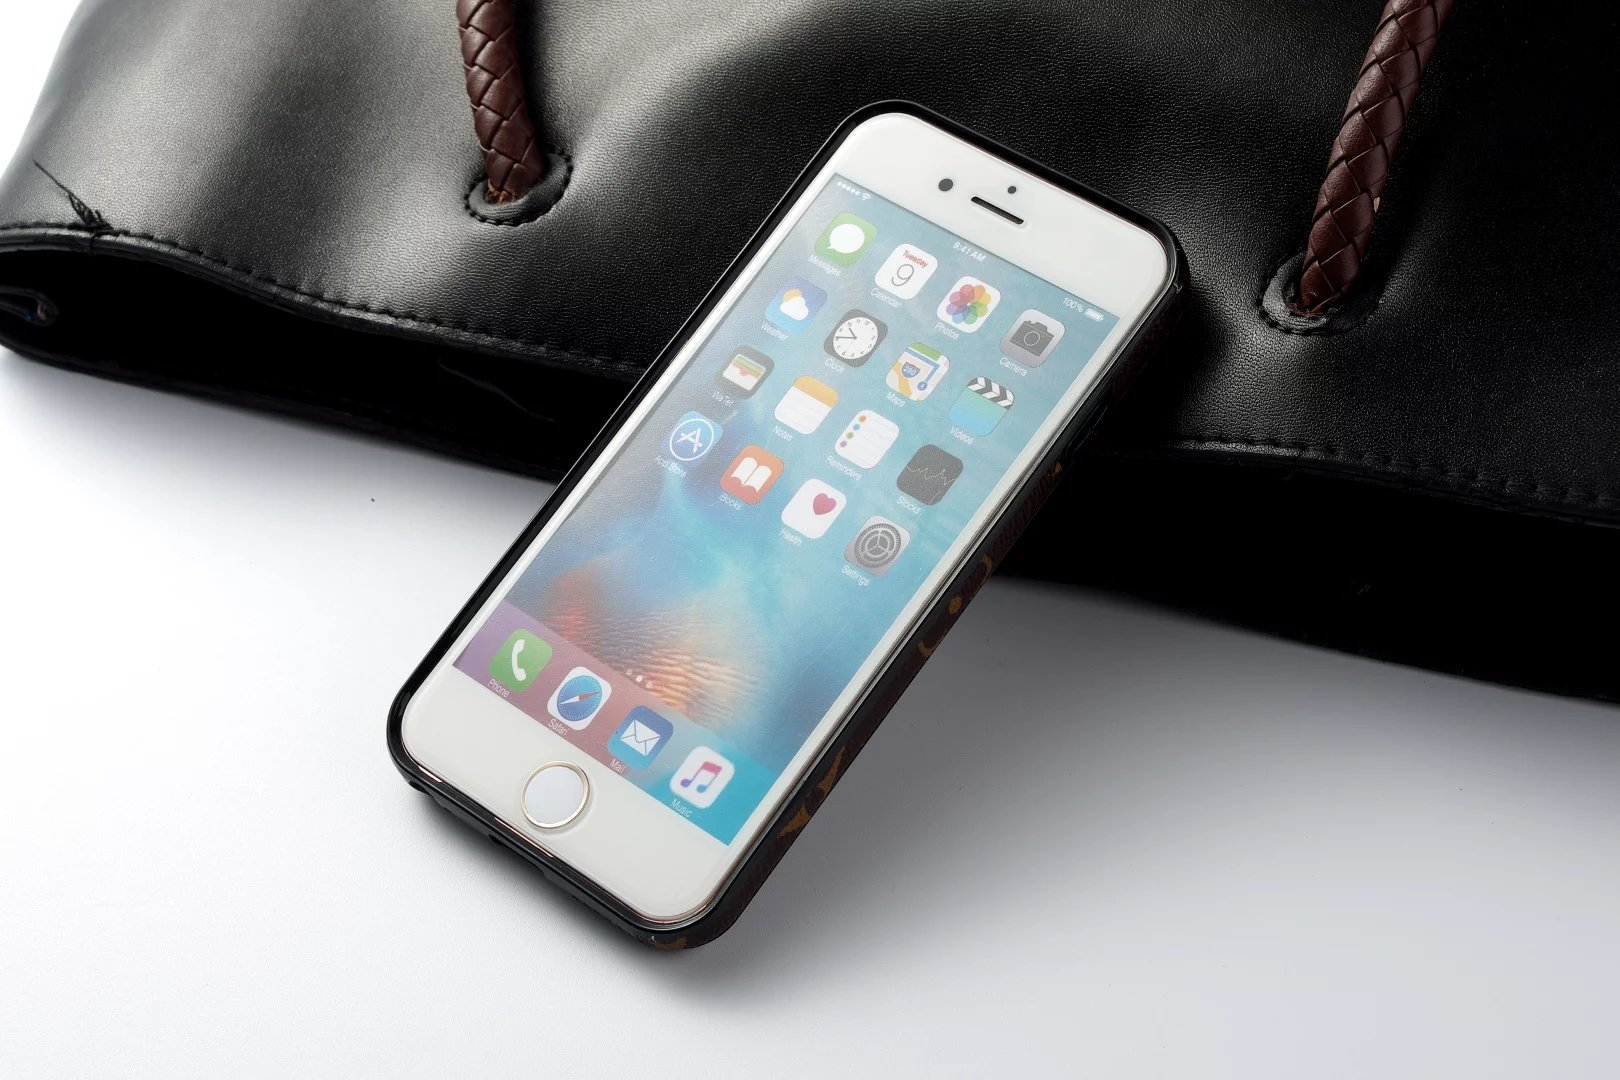 iphone hülle selbst designen hülle iphone Gucci iphone6 hülle iphone 6 bumper silikon hülle für iphone iphone designer hülle personalisierte iphone 6 hülle iphone 6 hülle mit sichtfenster iphone ca6 individuell